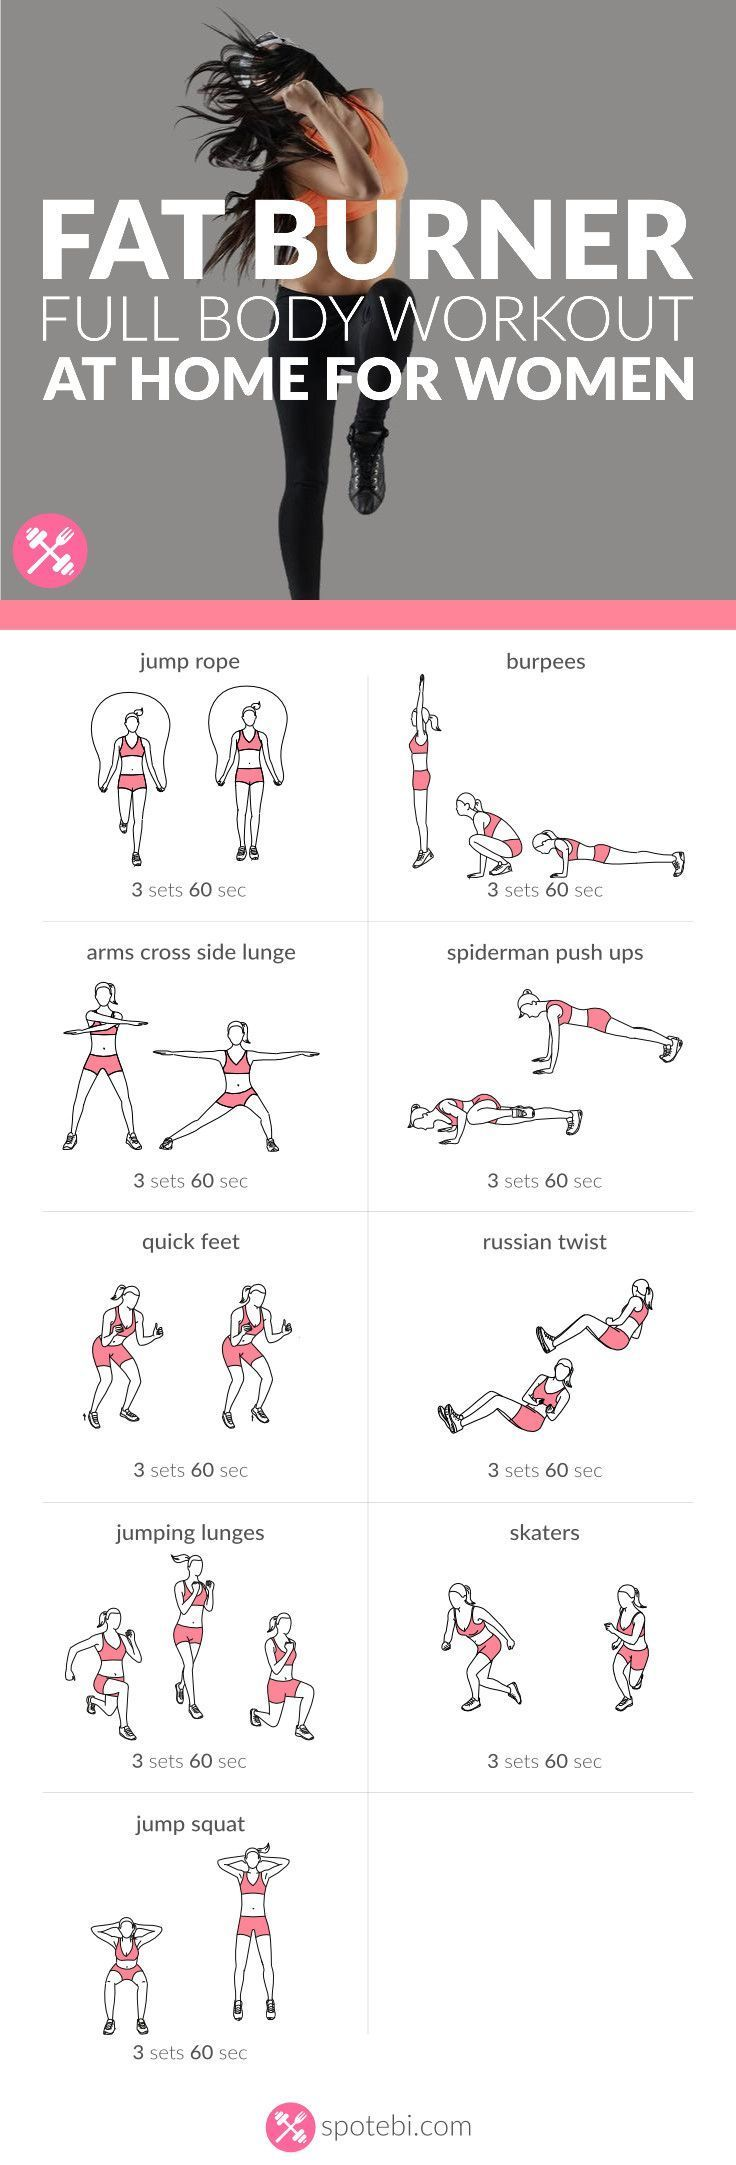 Increase your stamina and endurance with this bodyweight fat burner routine for women. A 30 minute full body workout to tone, tighten and sculpt your body. #cardiomenfullbody